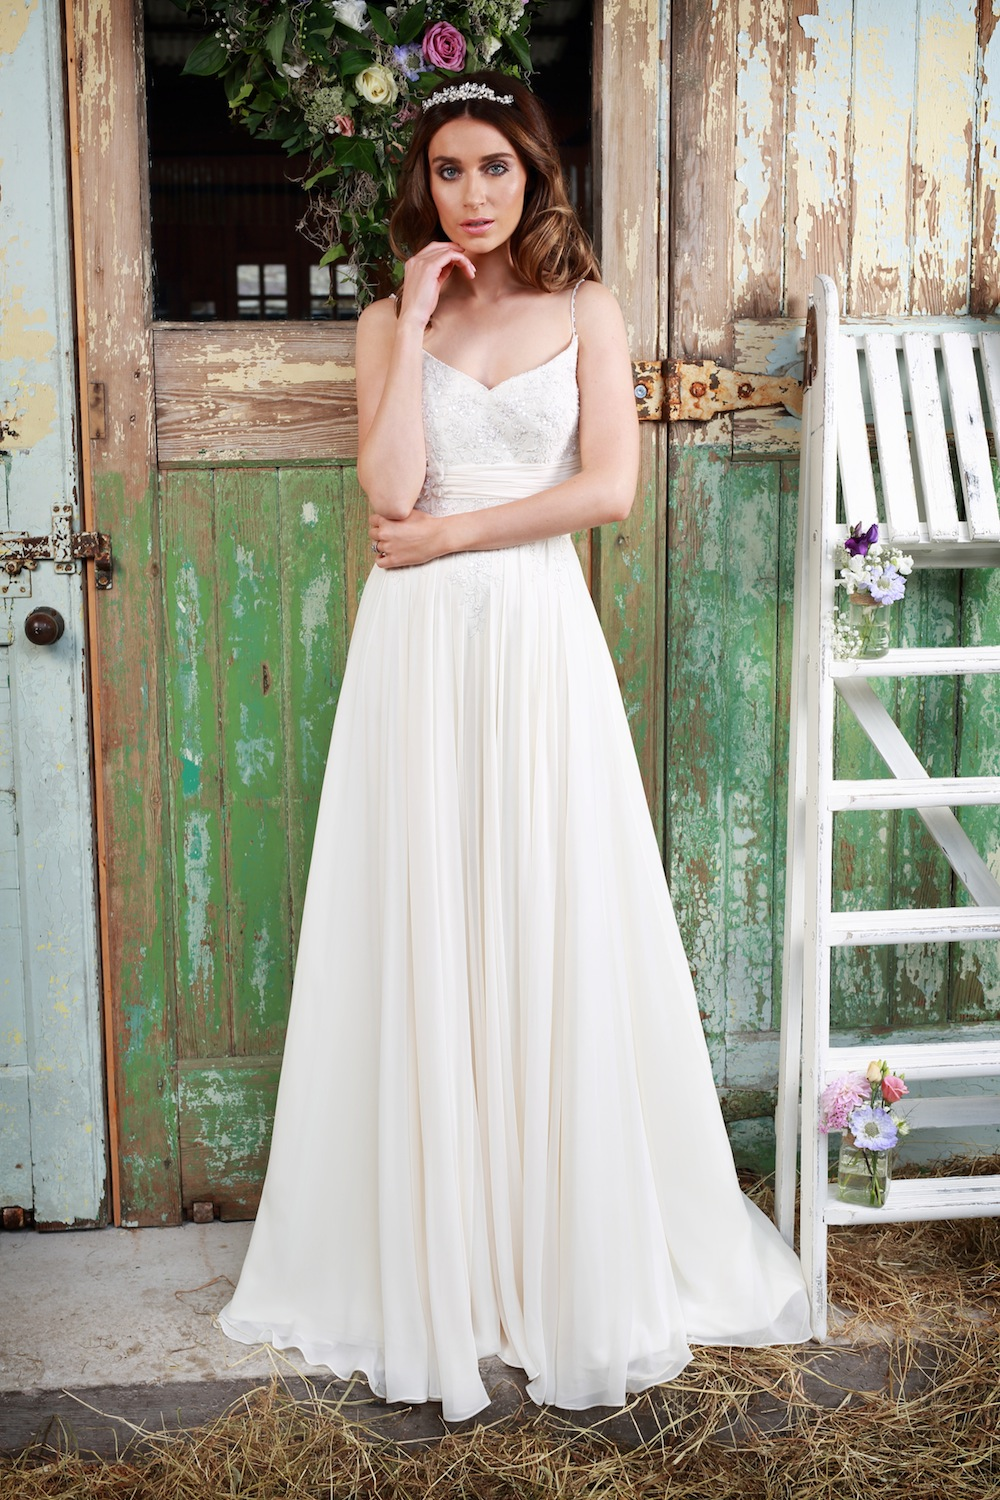 Amanda Wyatt 2016 Wedding Gowns : Leia - great gown for a beach wedding with 14-yards of chiffon. Slim straps move down to a tantalizing bodice accentuated with delicate pearls.